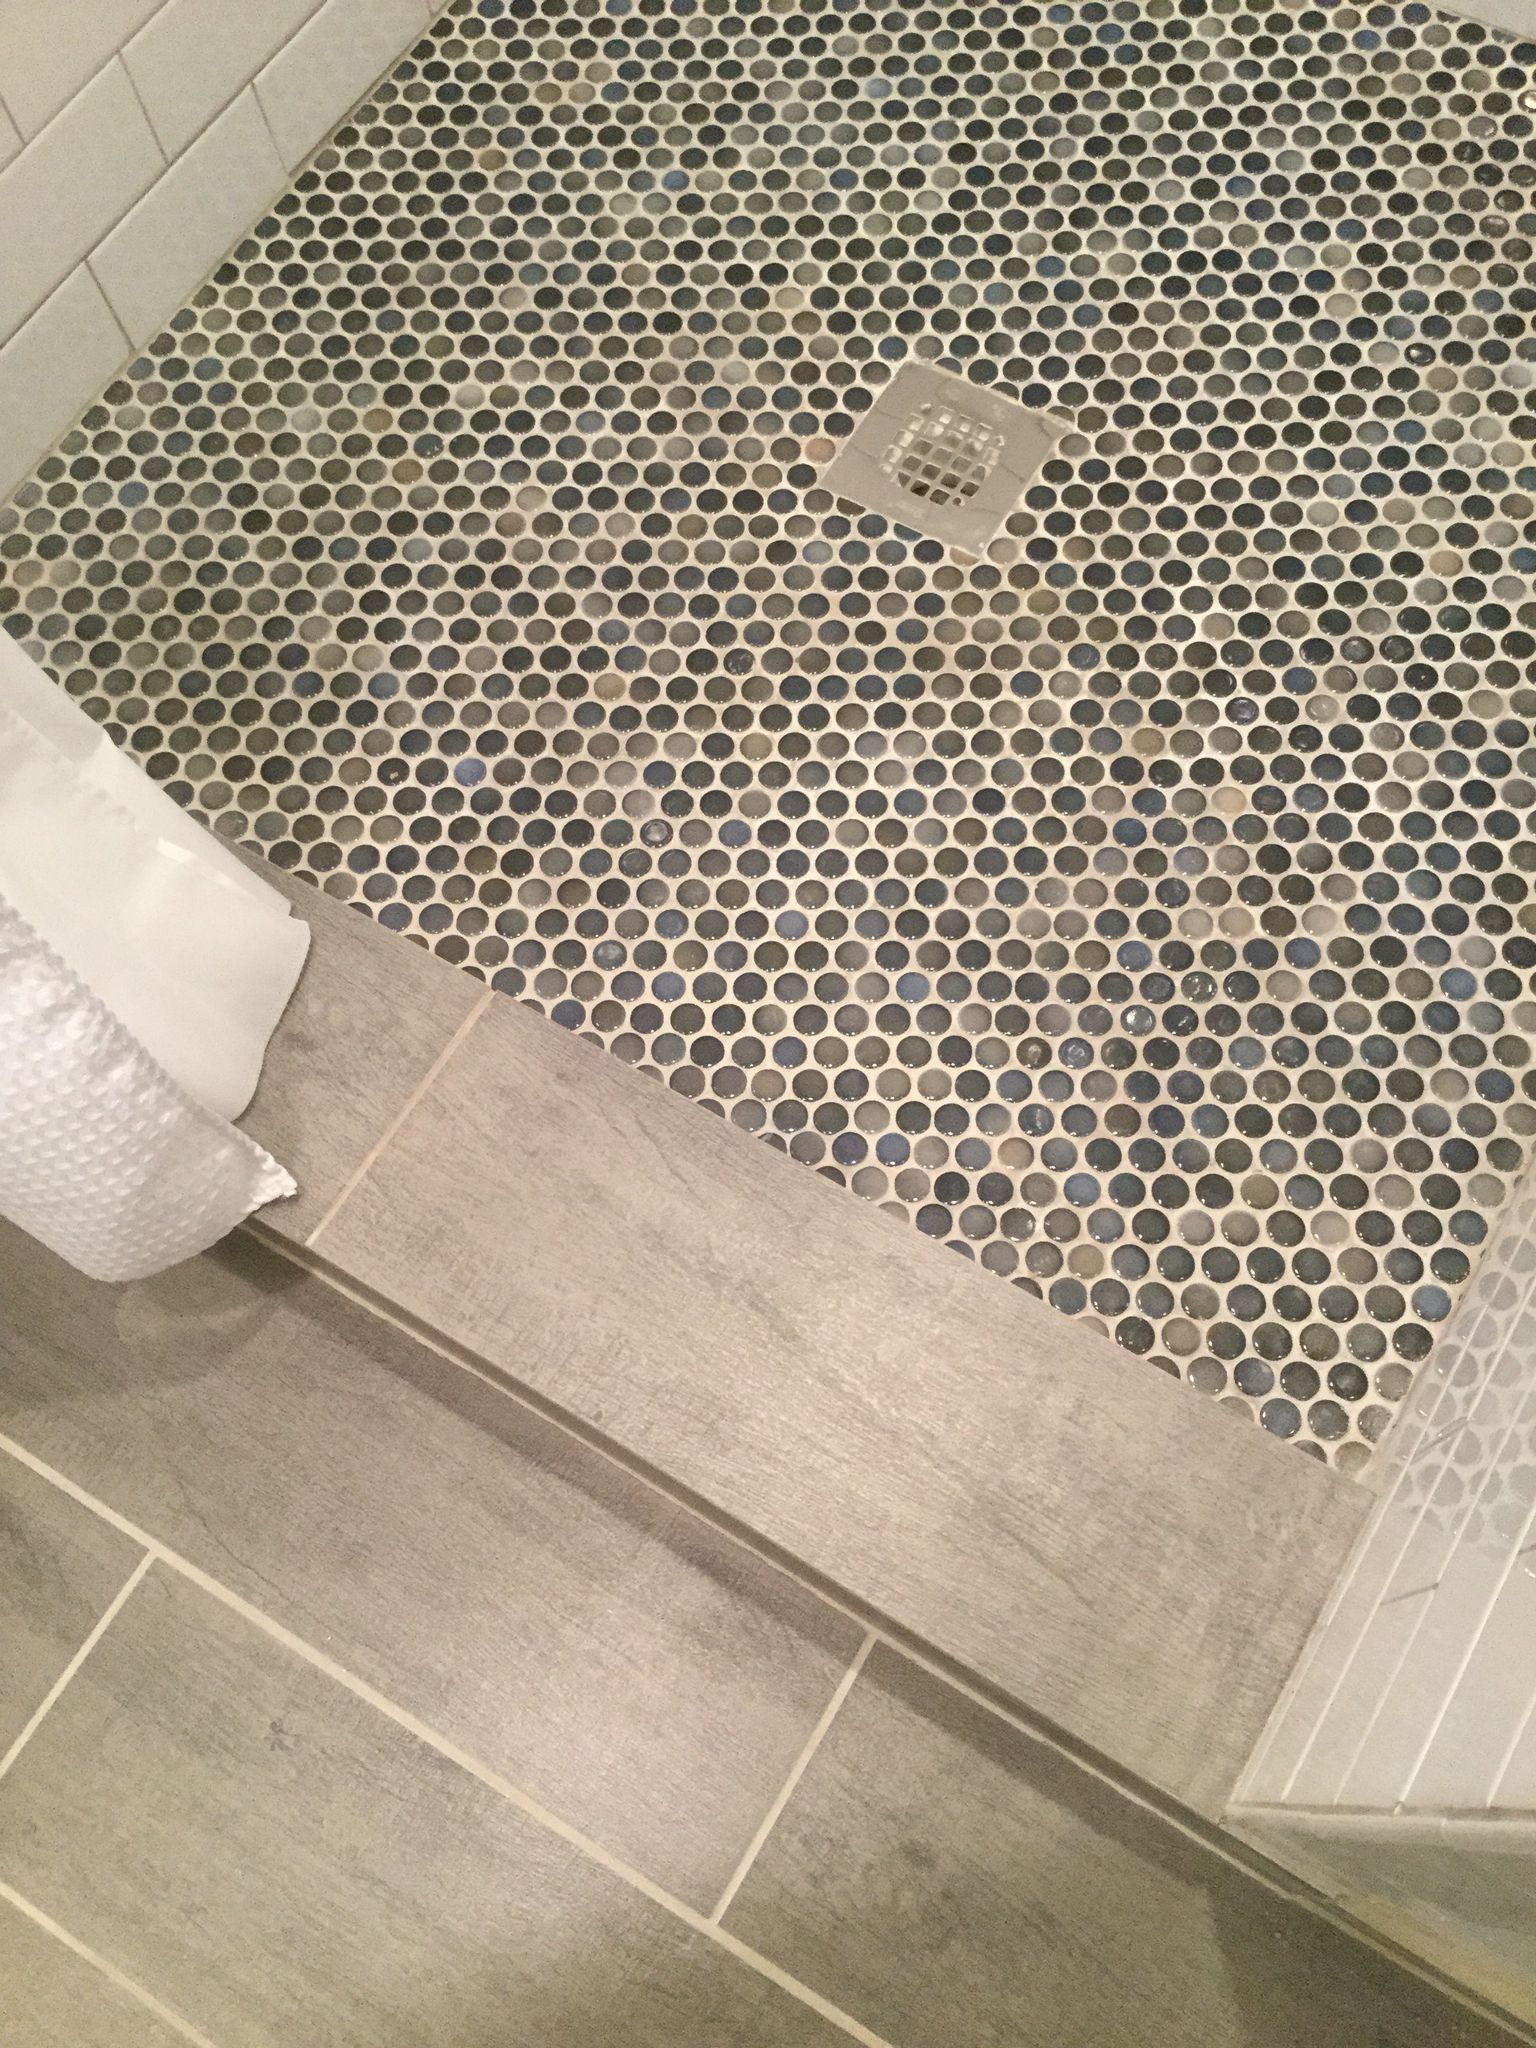 blue and gray penny tile on shower floor small bathrooms shower floor tile shower floor. Black Bedroom Furniture Sets. Home Design Ideas